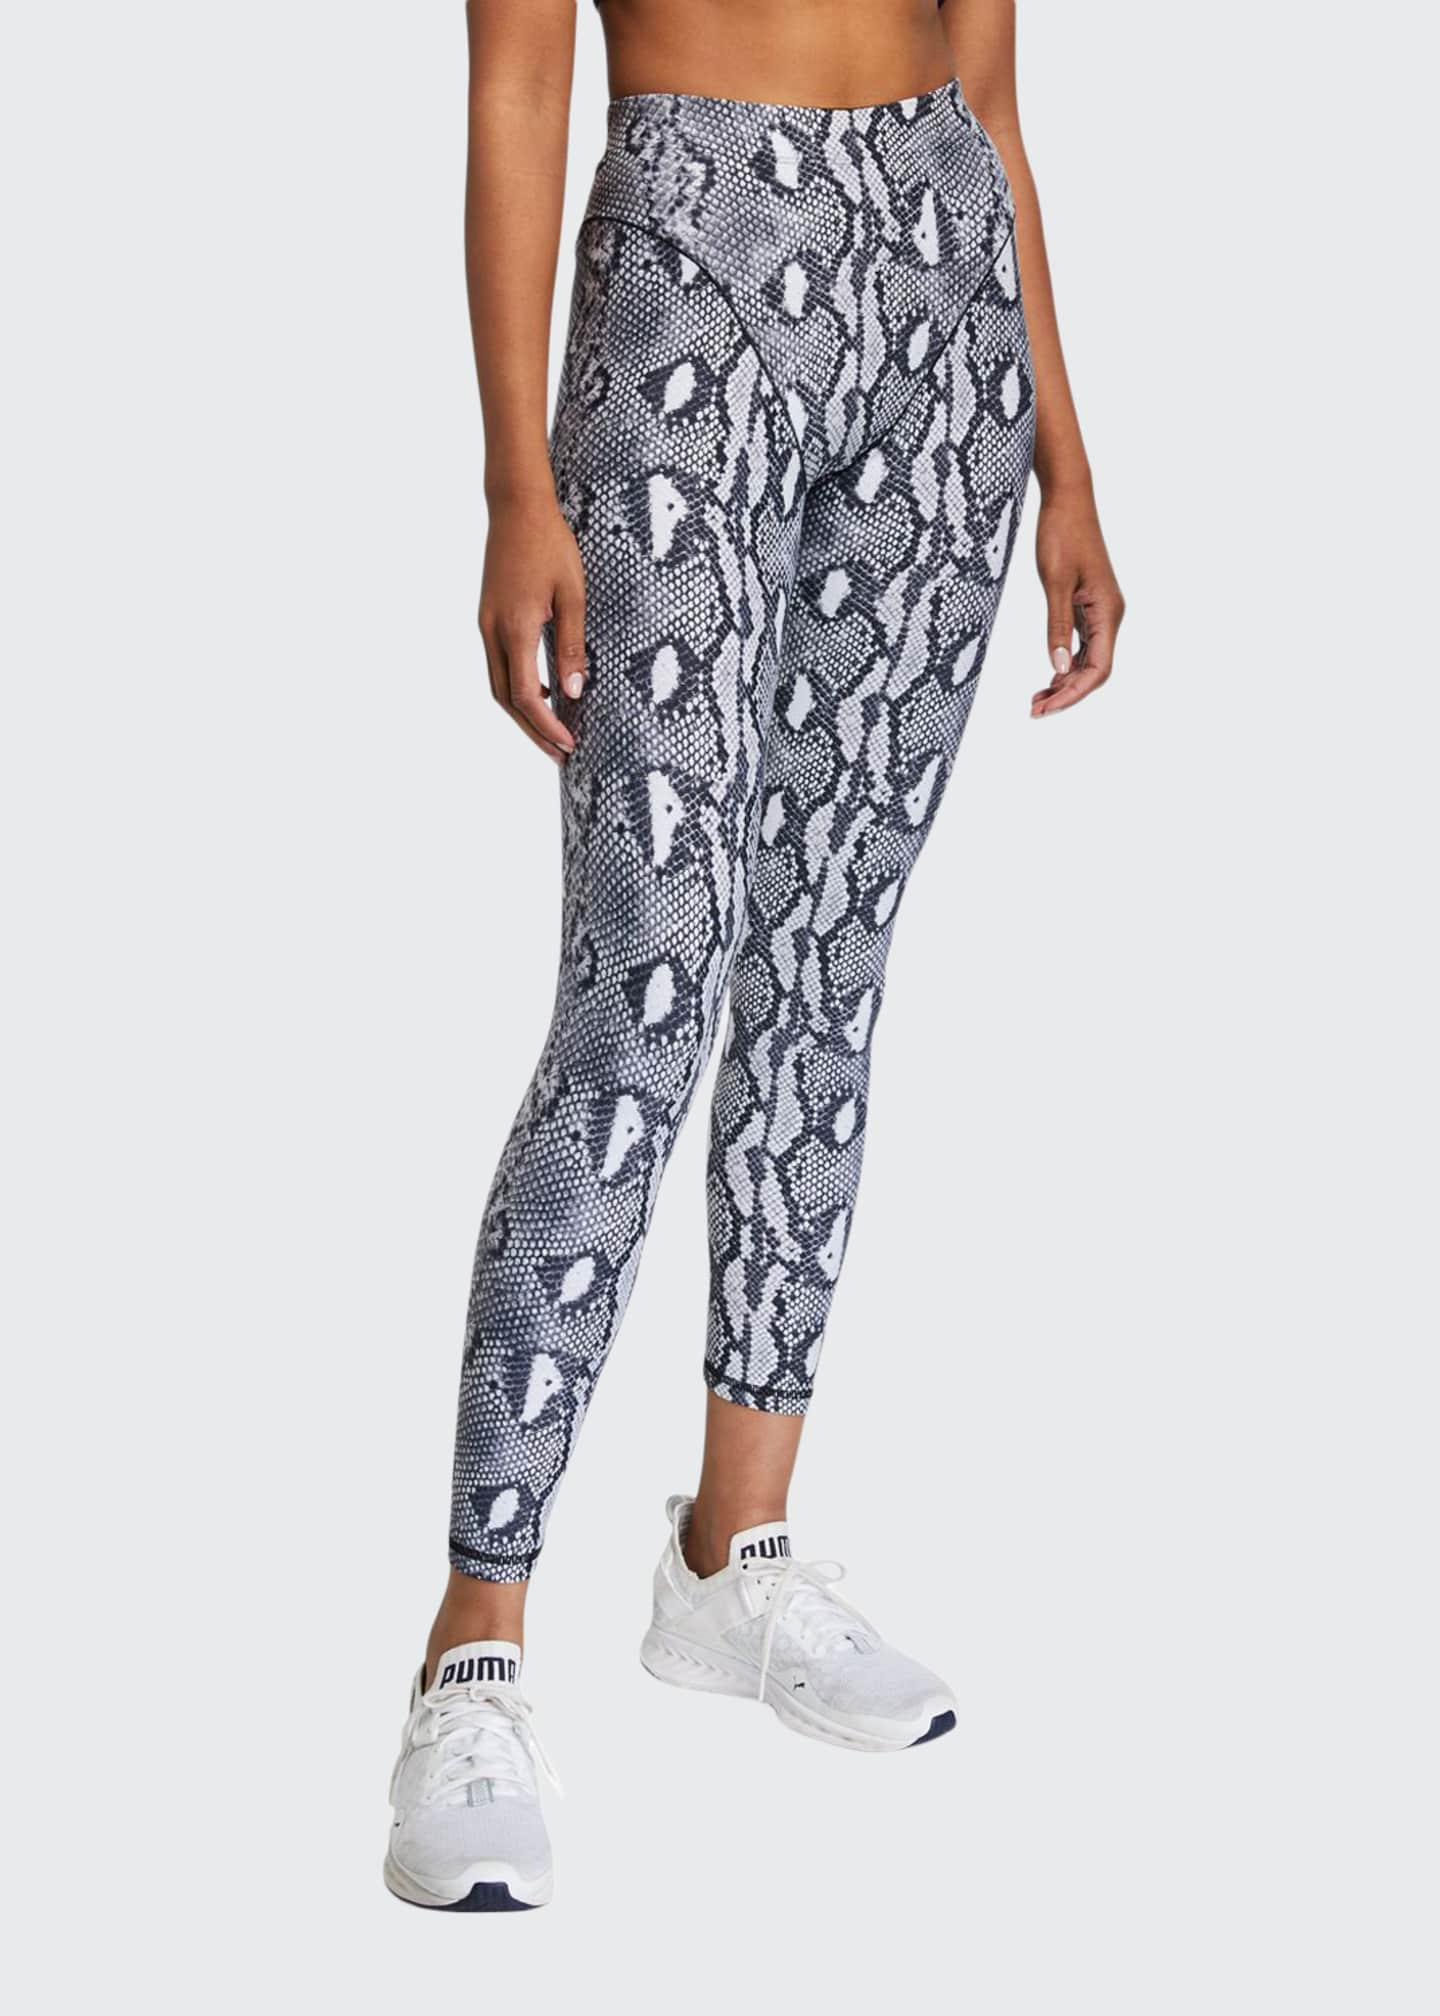 Adam Selman Sport French Cut Python-Printed Leggings